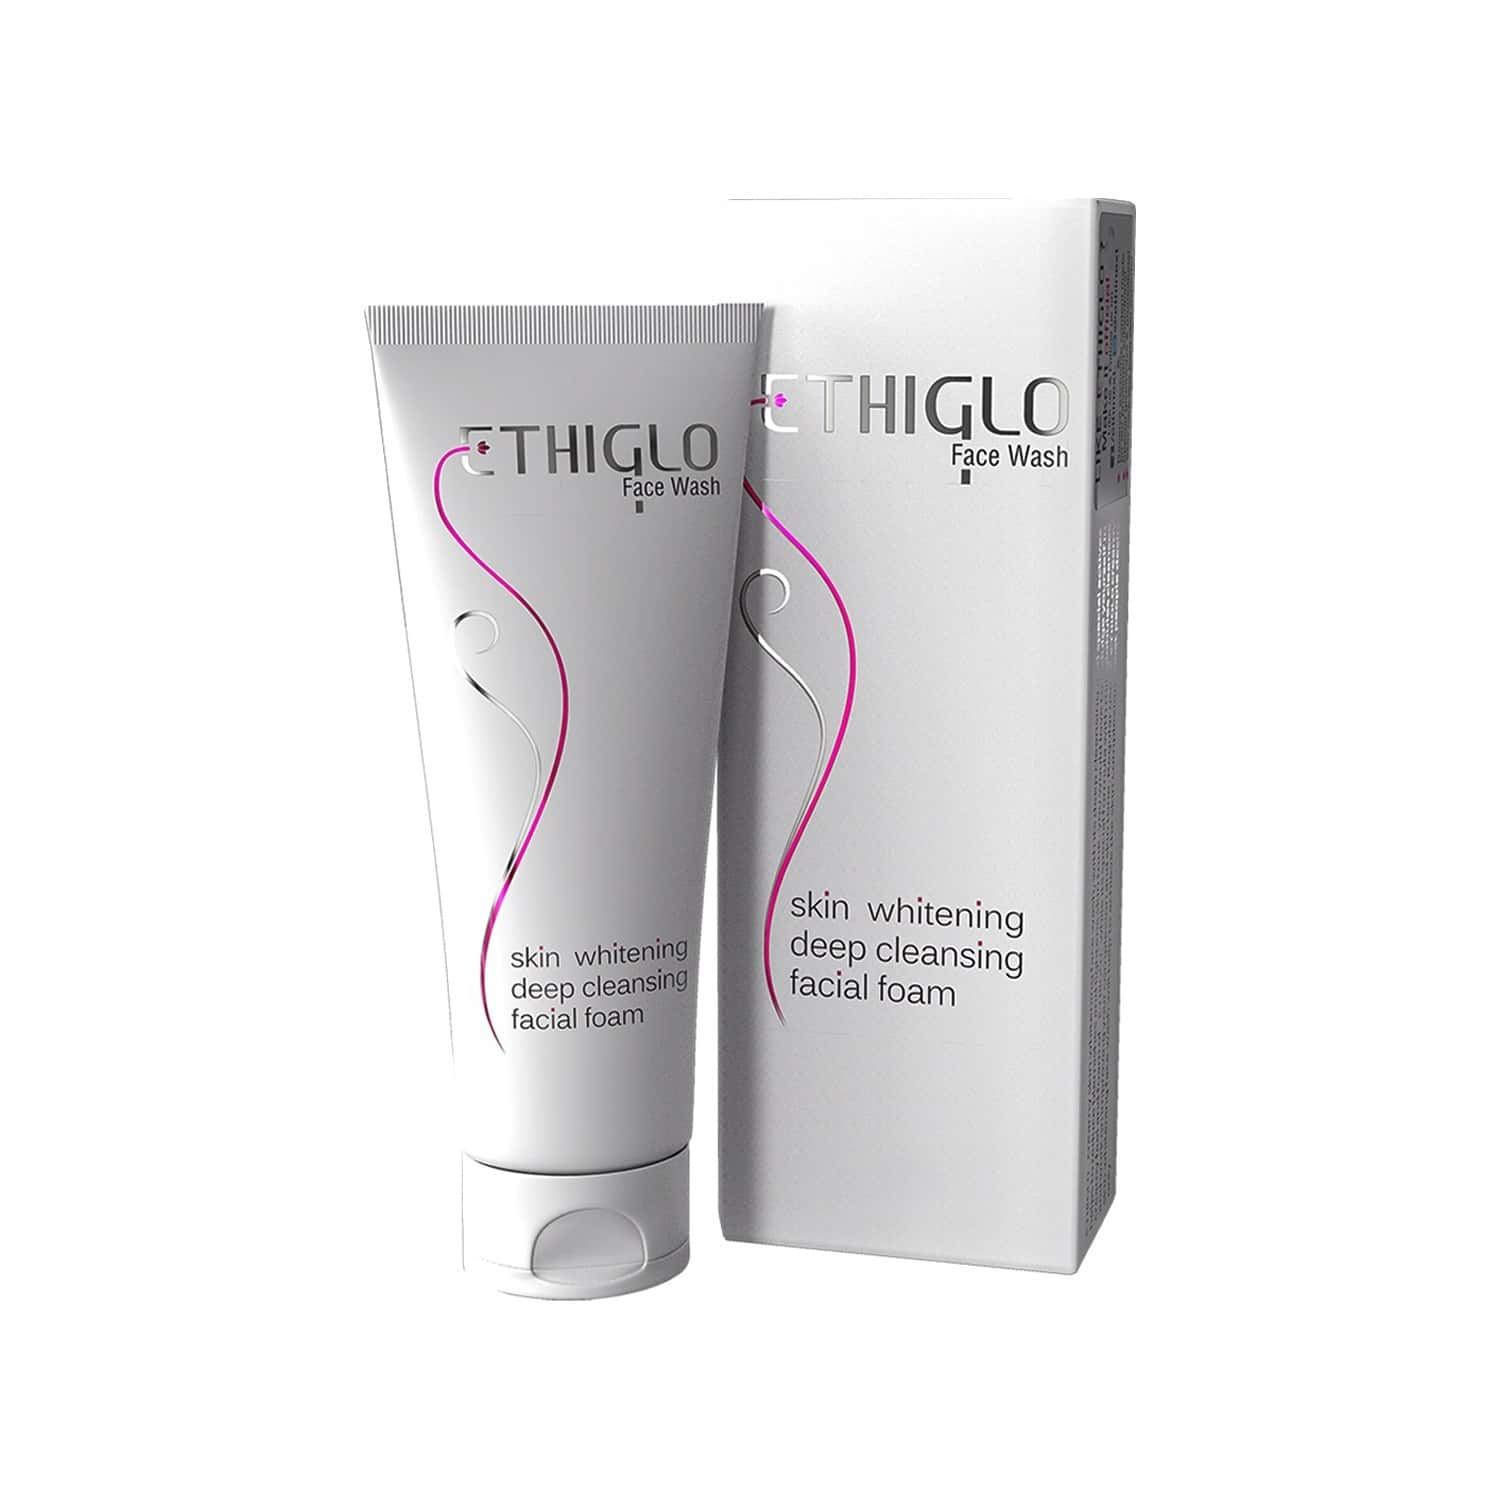 Ethiglo Skin Whitening Face Wash - 70 Ml